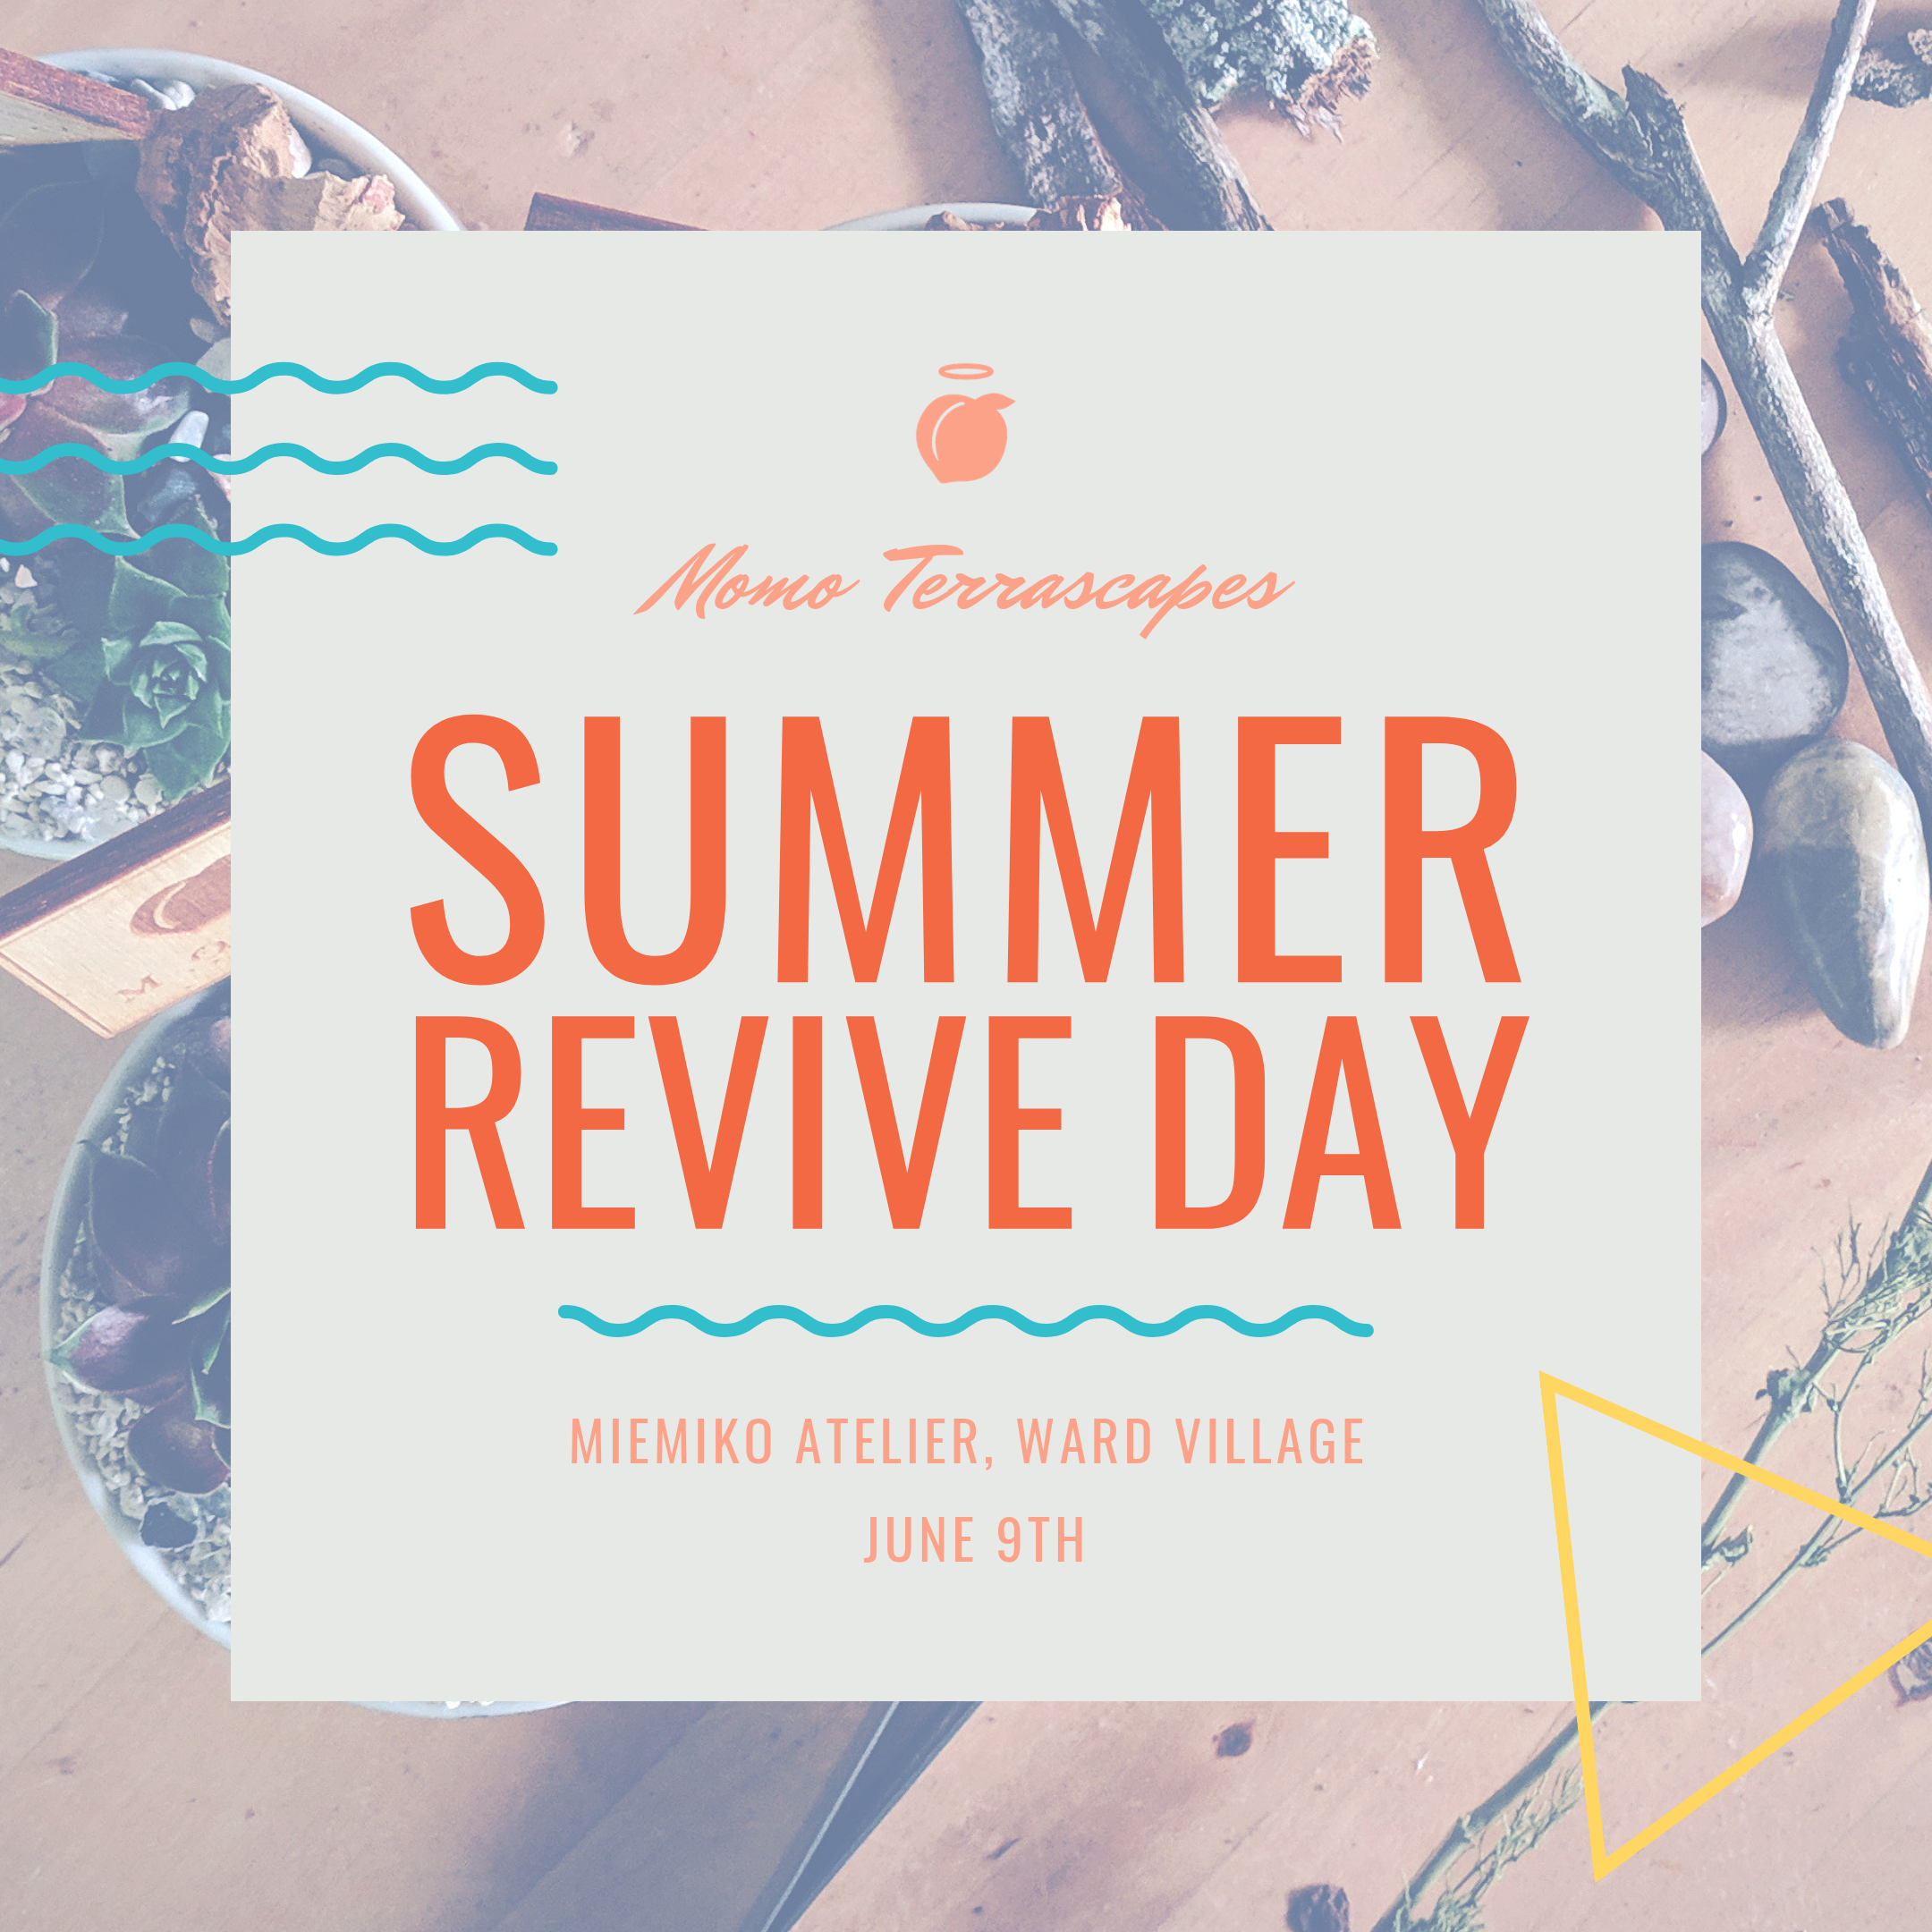 #revivethemomo - Join us for our very Summer Revive Day hosted by our friend's at Miemiko Atelier!